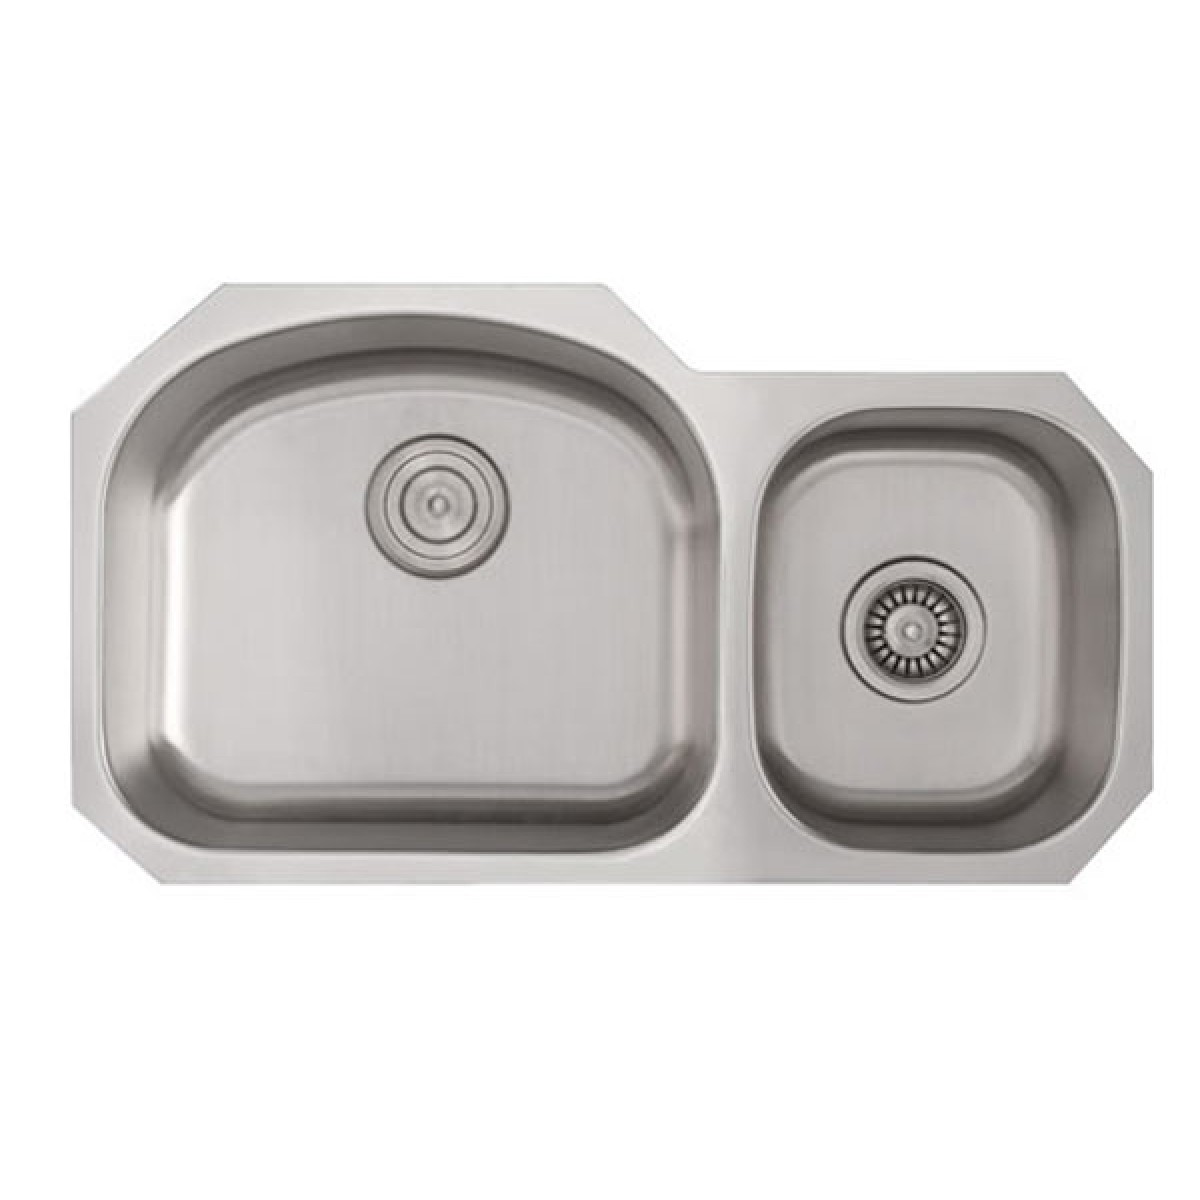 32 Inch Stainless Steel Undermount 60/40 Double D Bowl Offset Kitchen Sink    16 Gauge